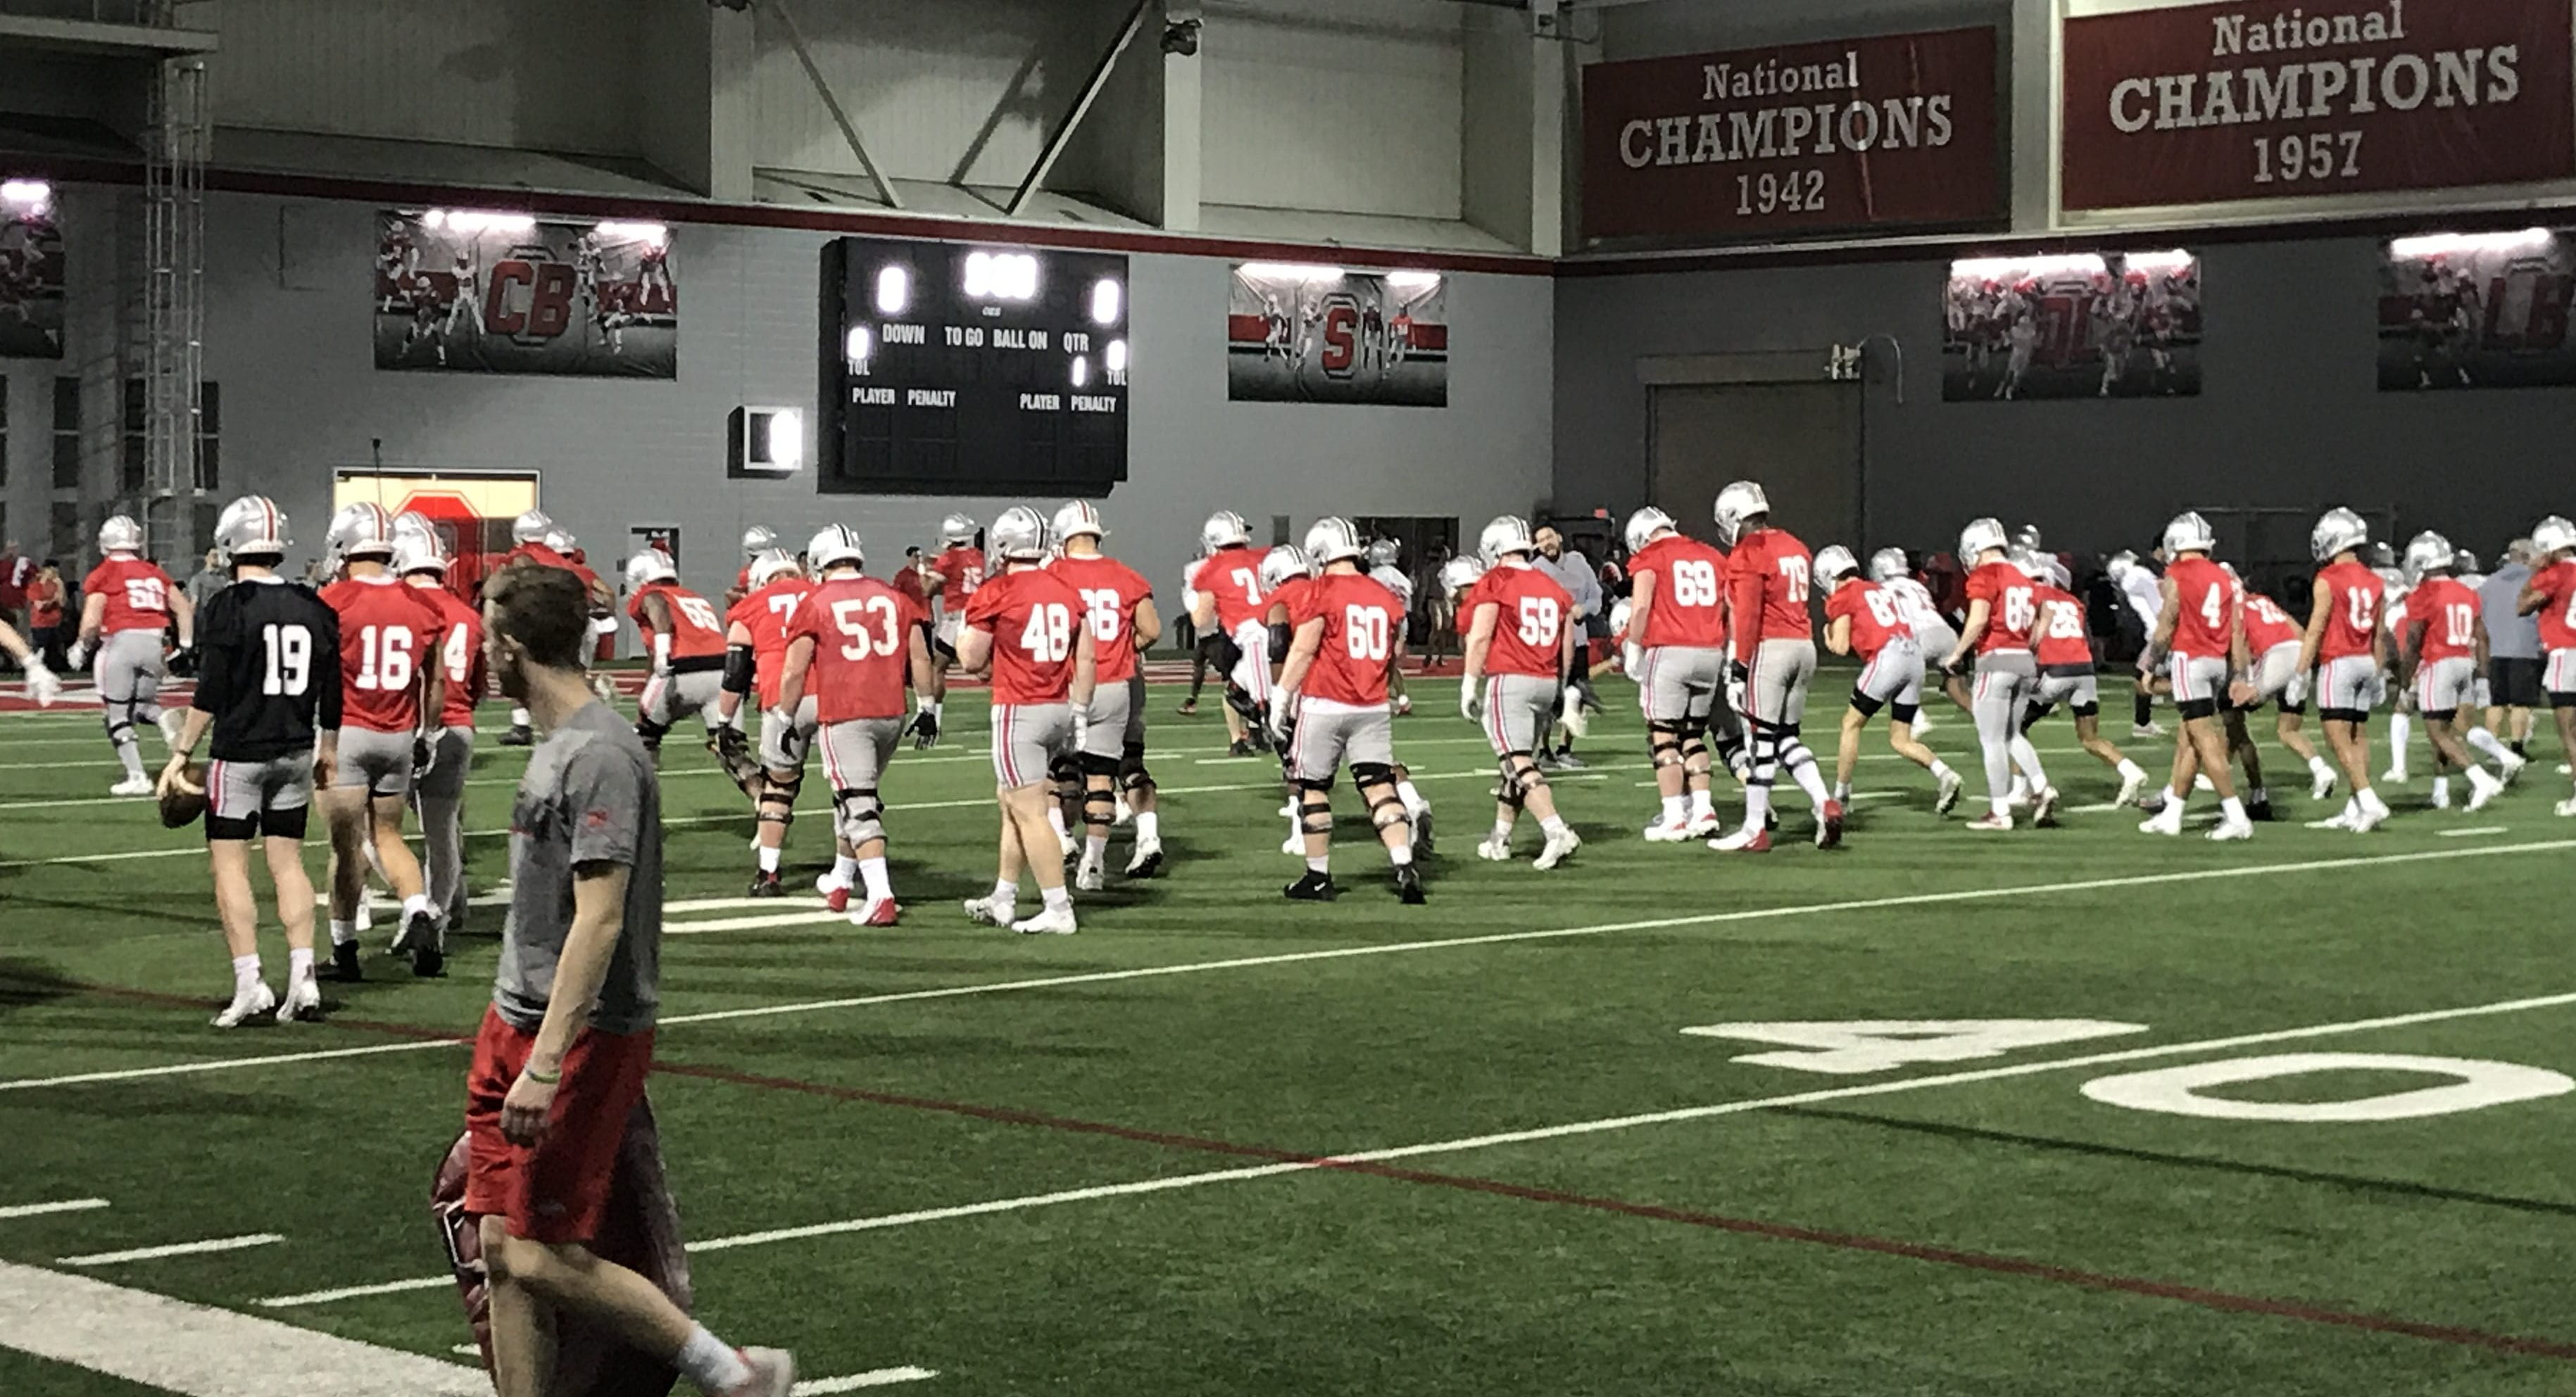 Football Jaxon Smith Njigba C J Stroud Show Flashes In First Ohio State Spring Practice The Lantern